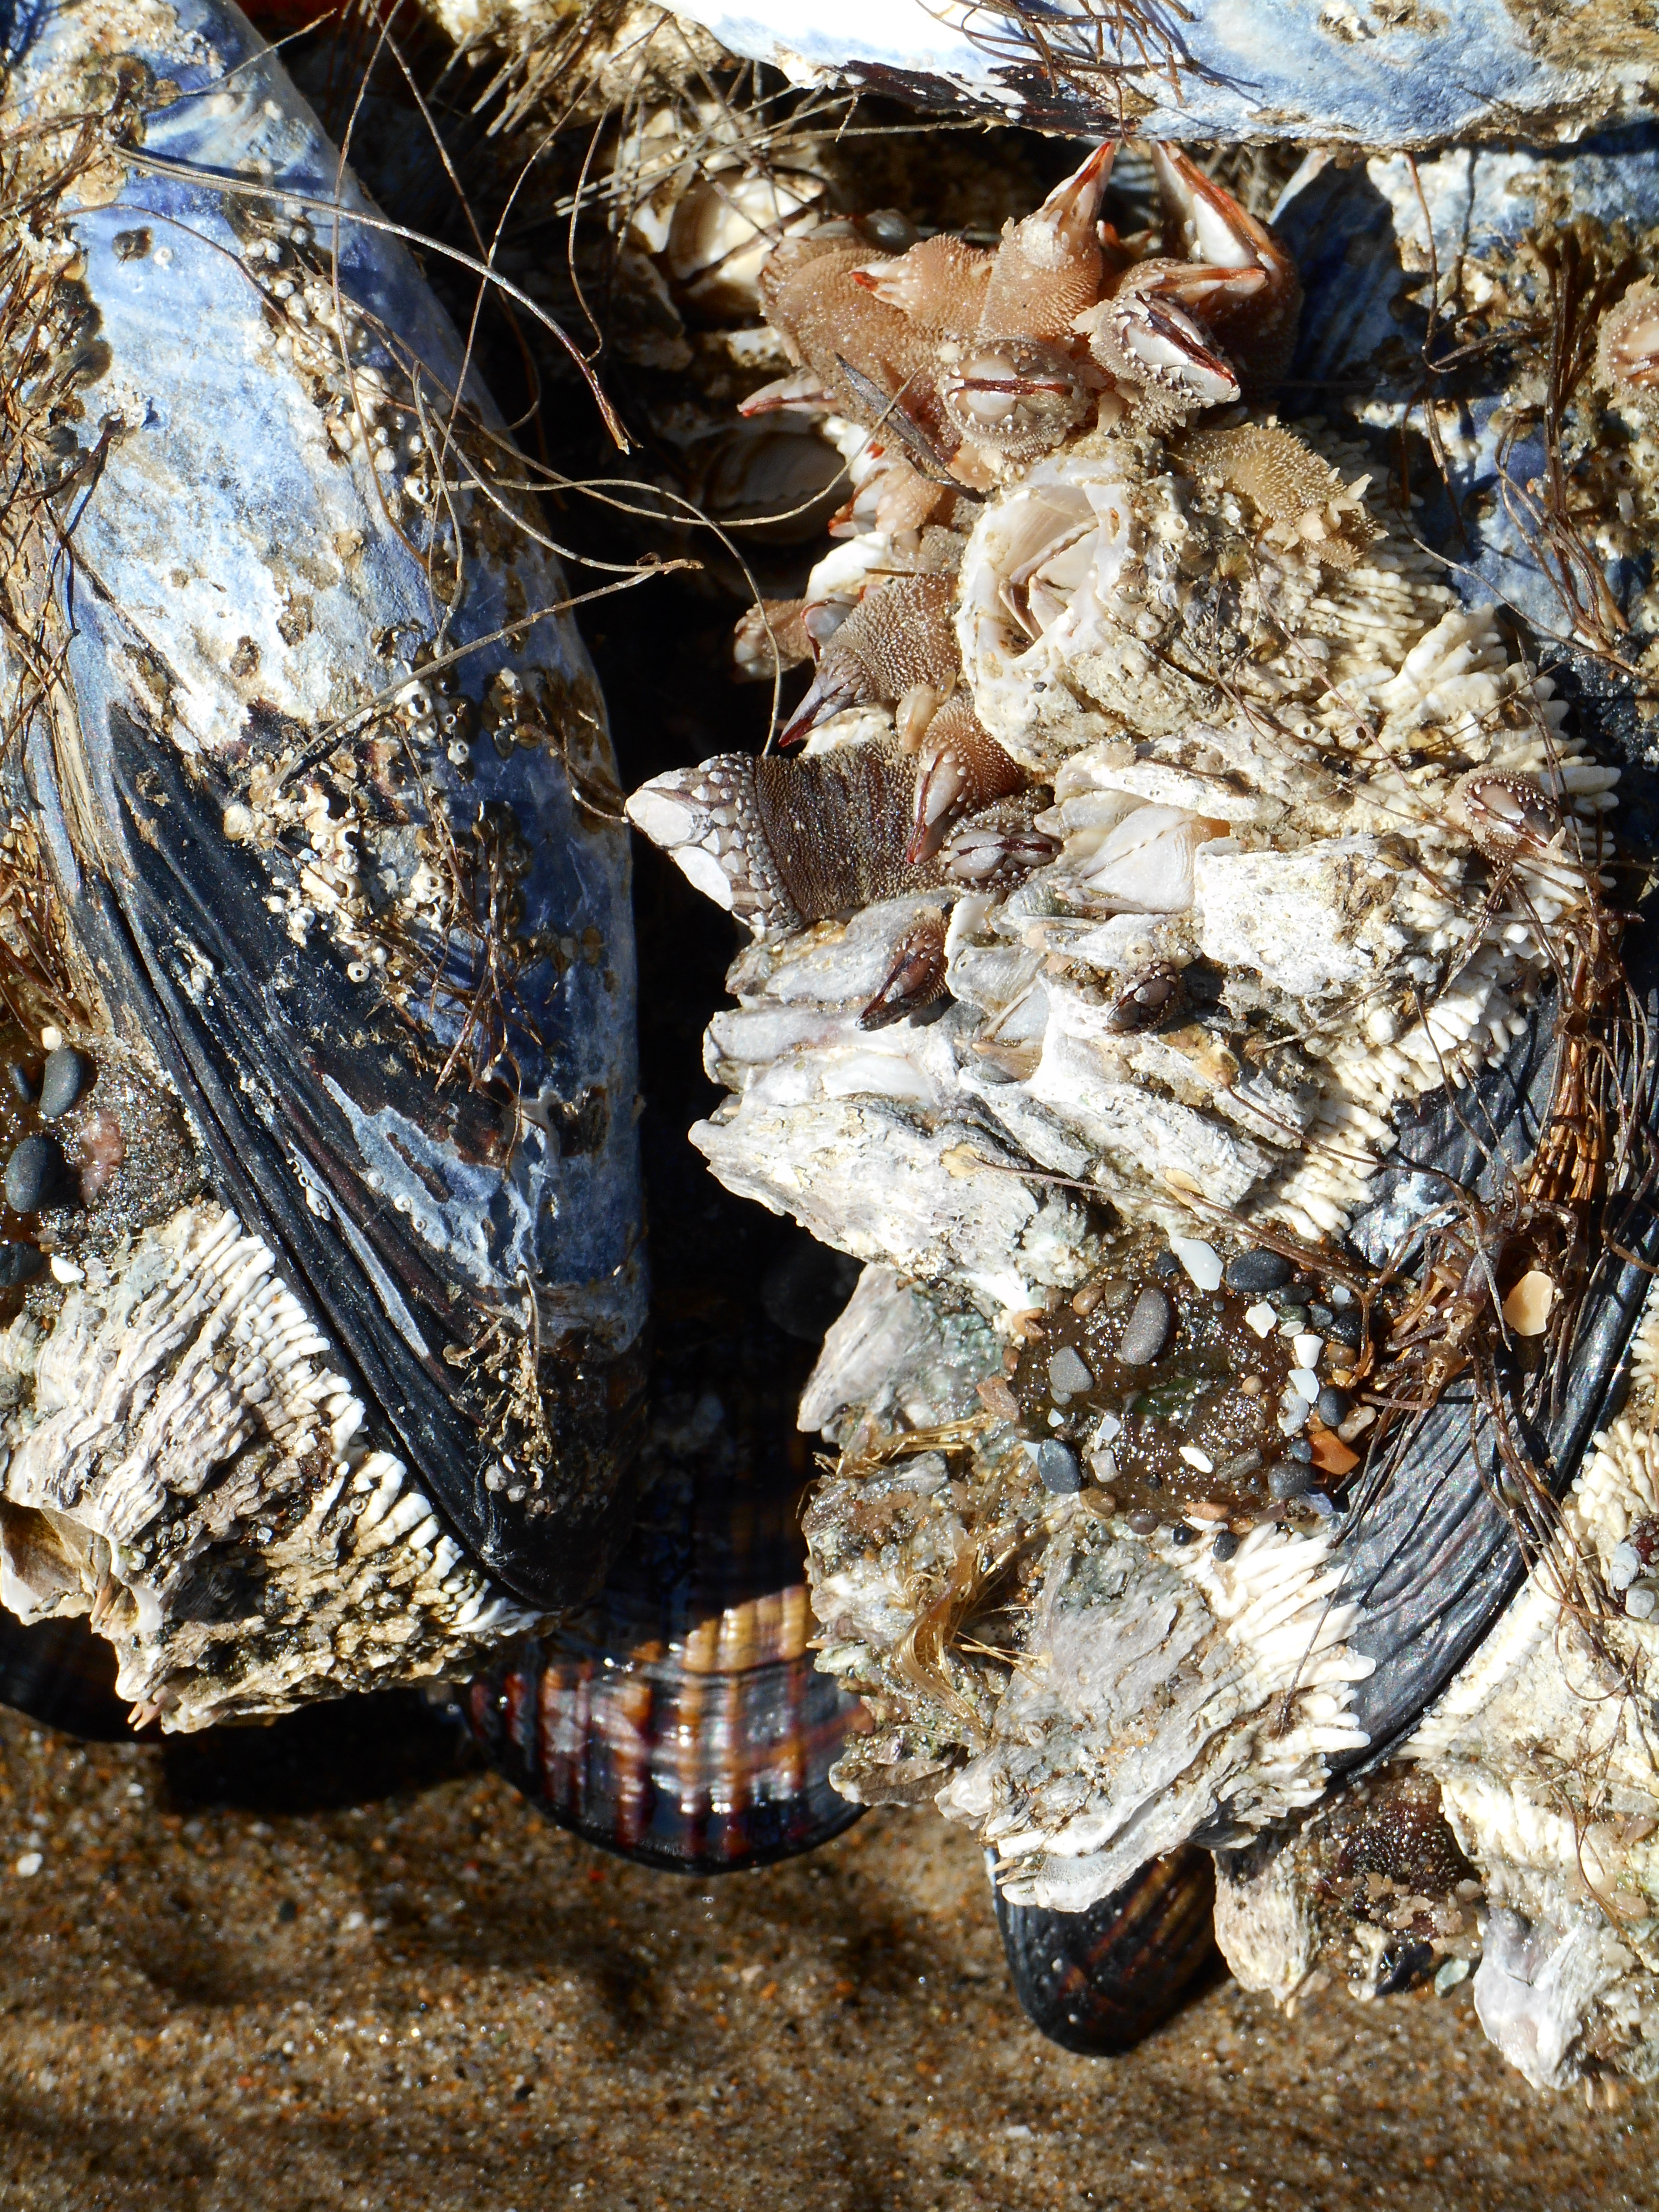 mussel shells and barnacles on the oregon beach 2014